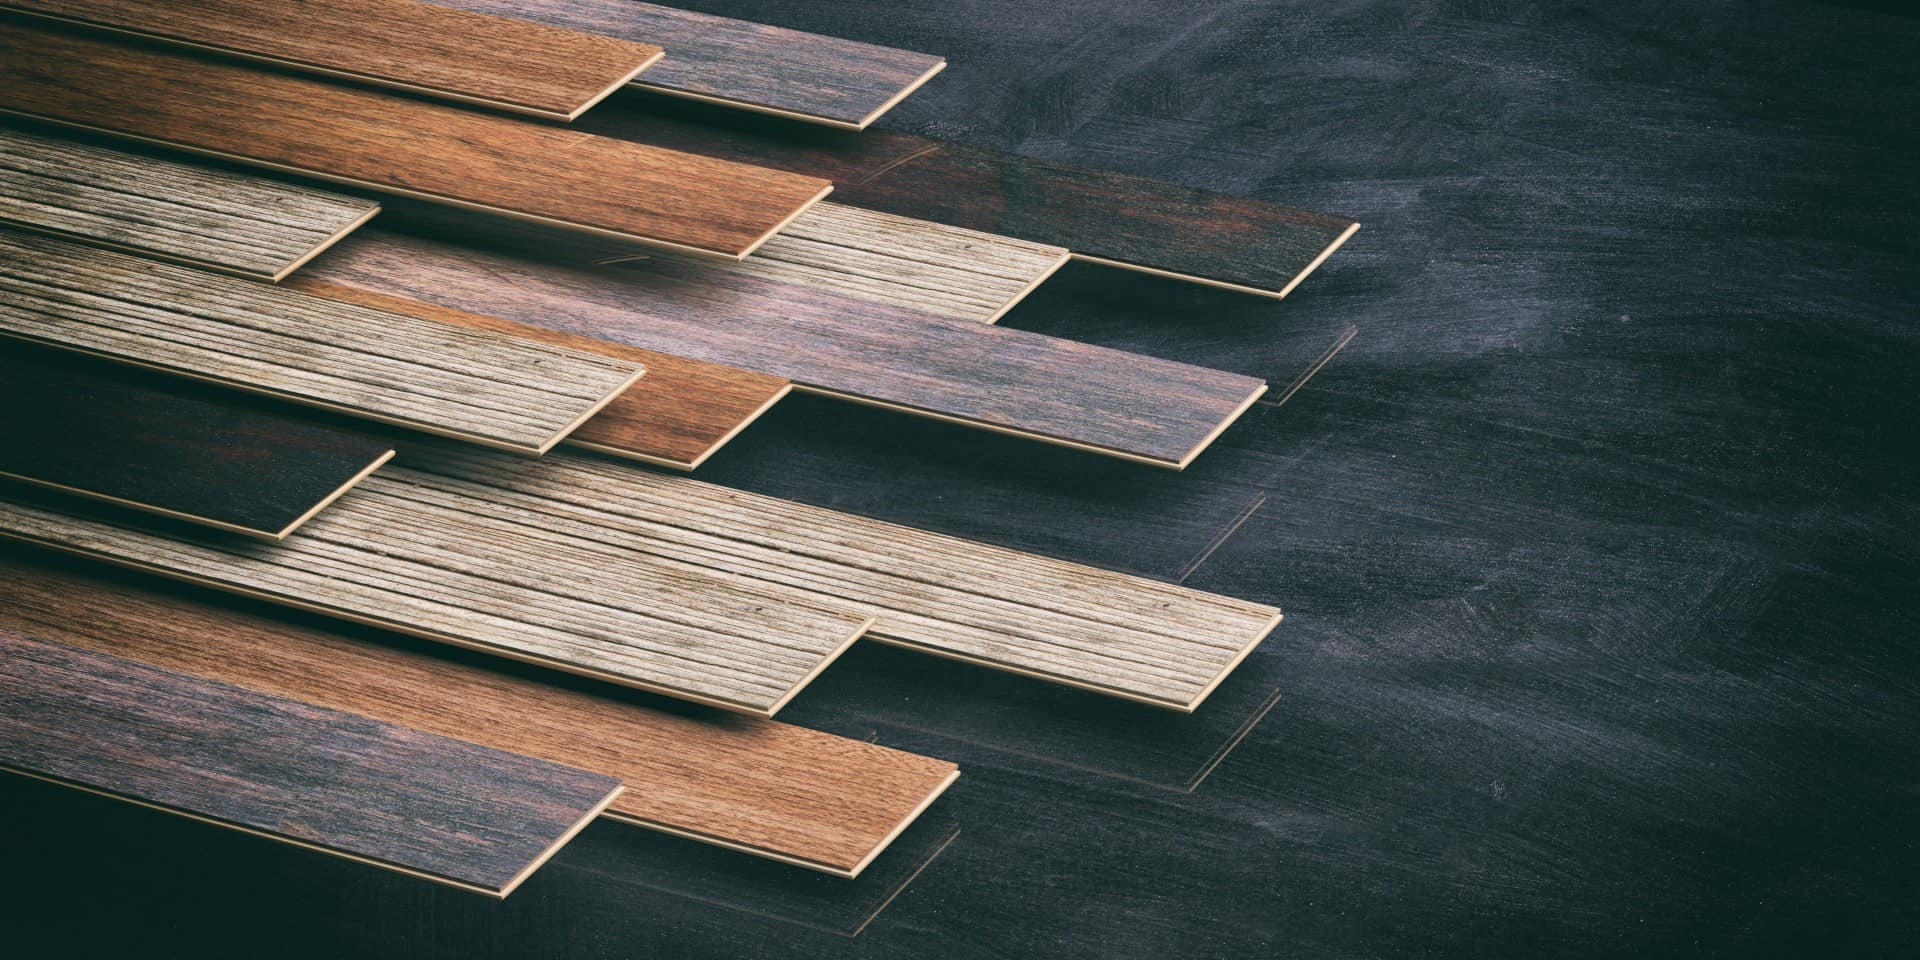 Examples of commercial laminate flooring samples